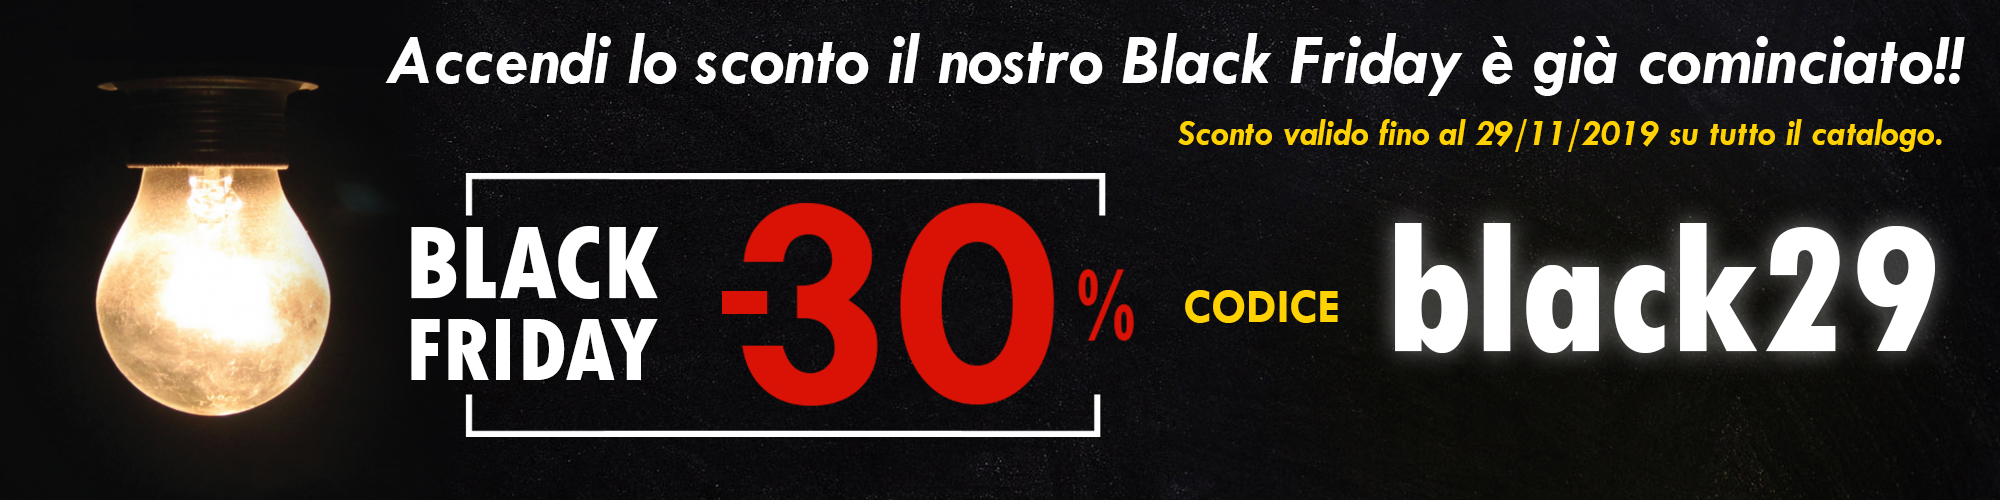 Black-friday-prodotto